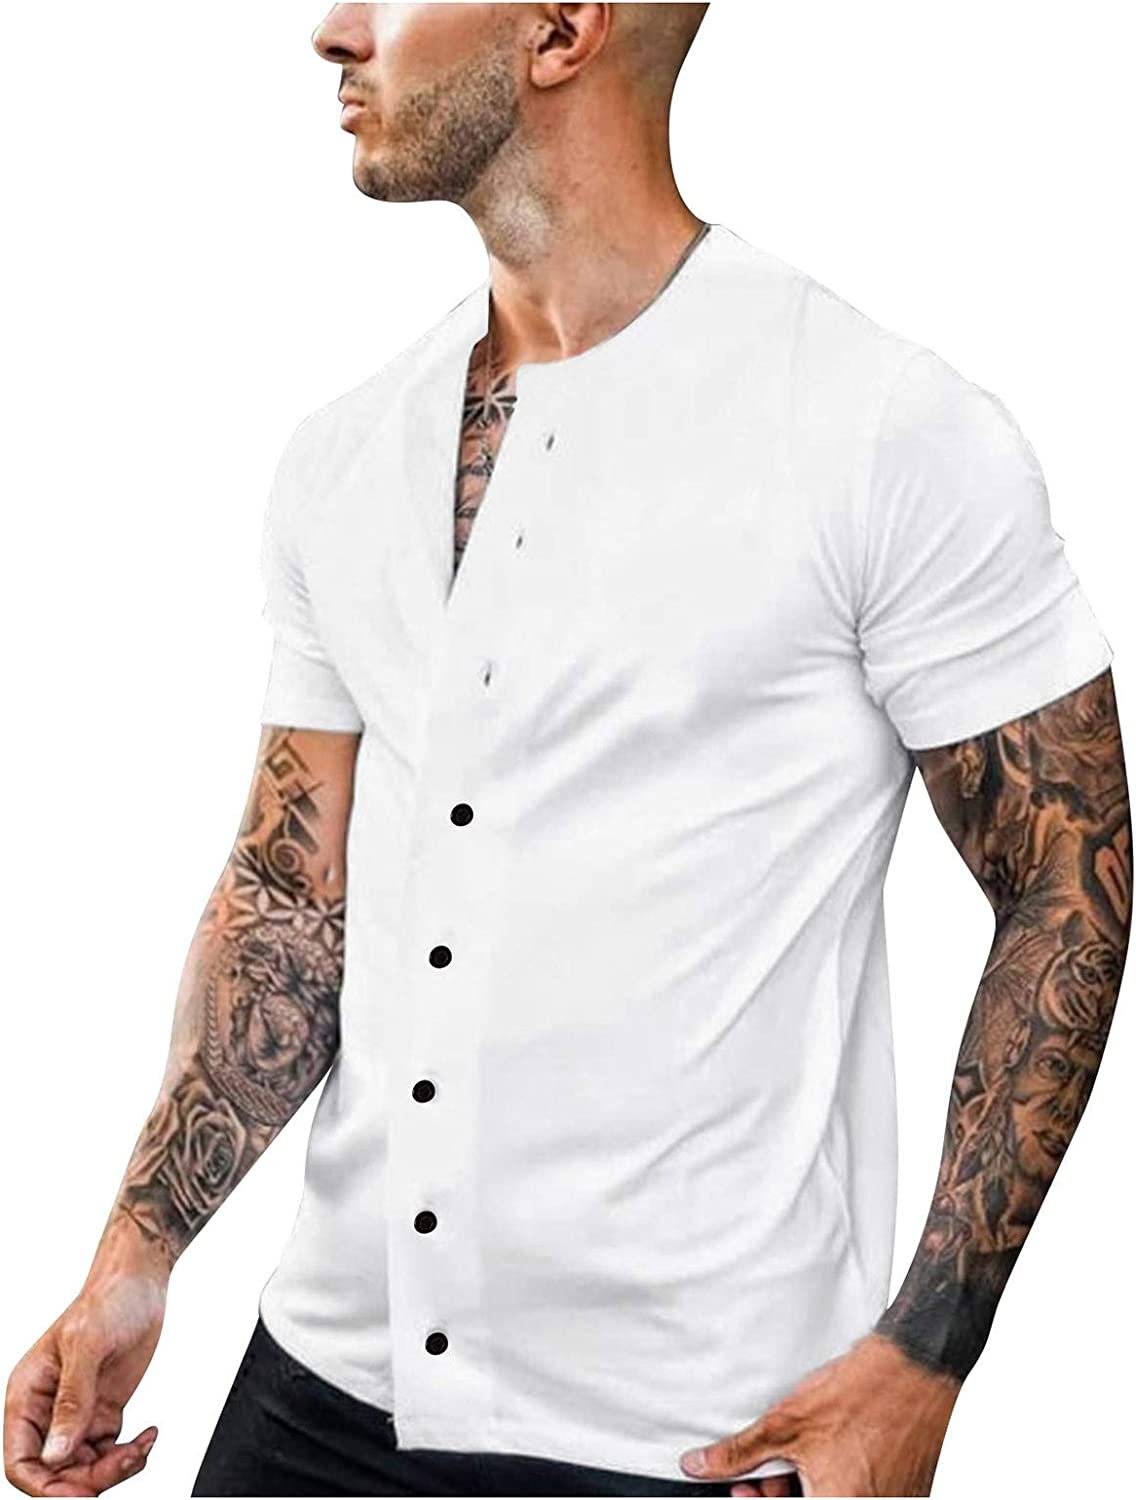 FIN86 Summer Men Fashion Blouse Casual Super beauty product restock quality top Solid Sho Slim Year-end gift